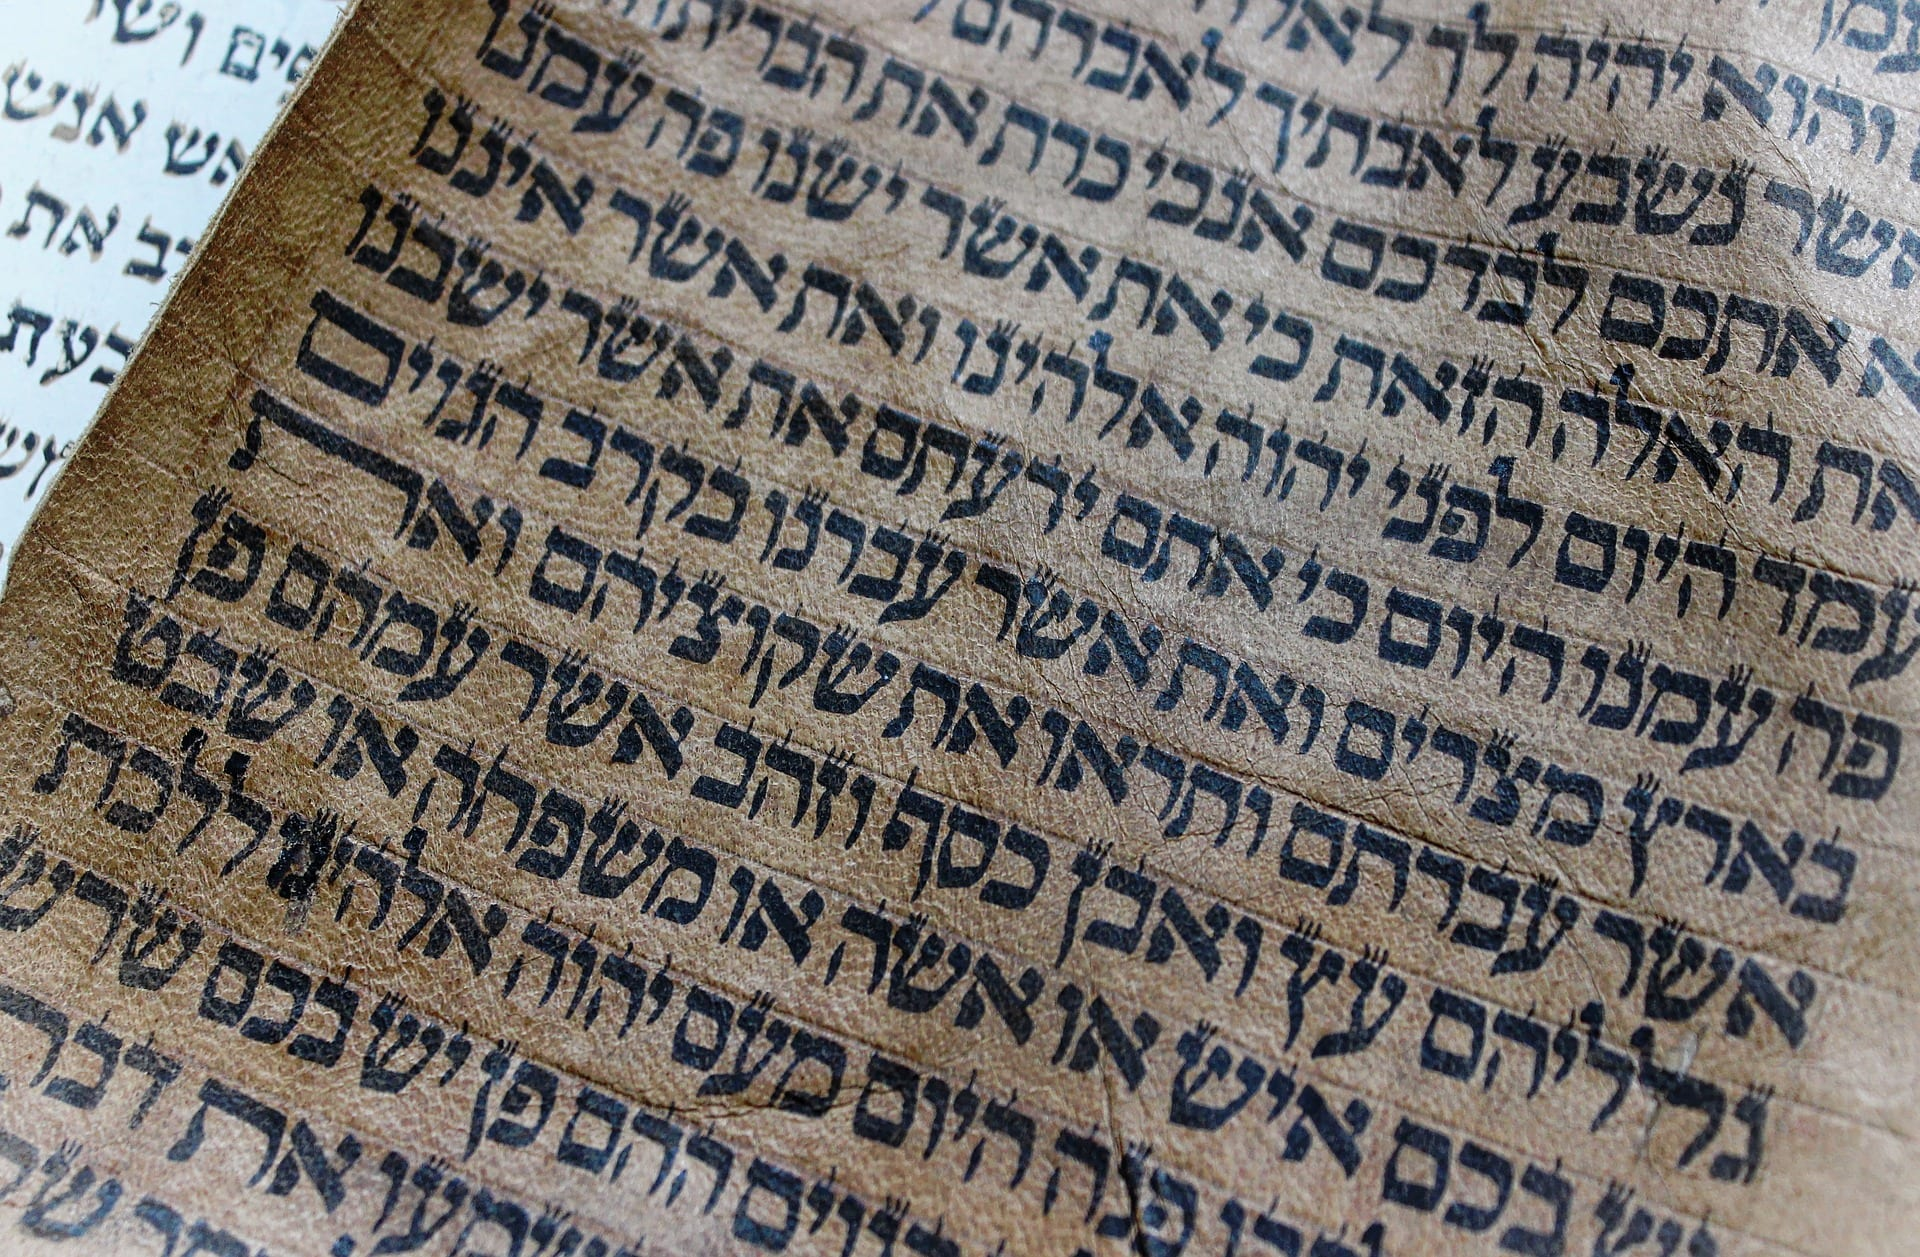 learn to read hebrew writing